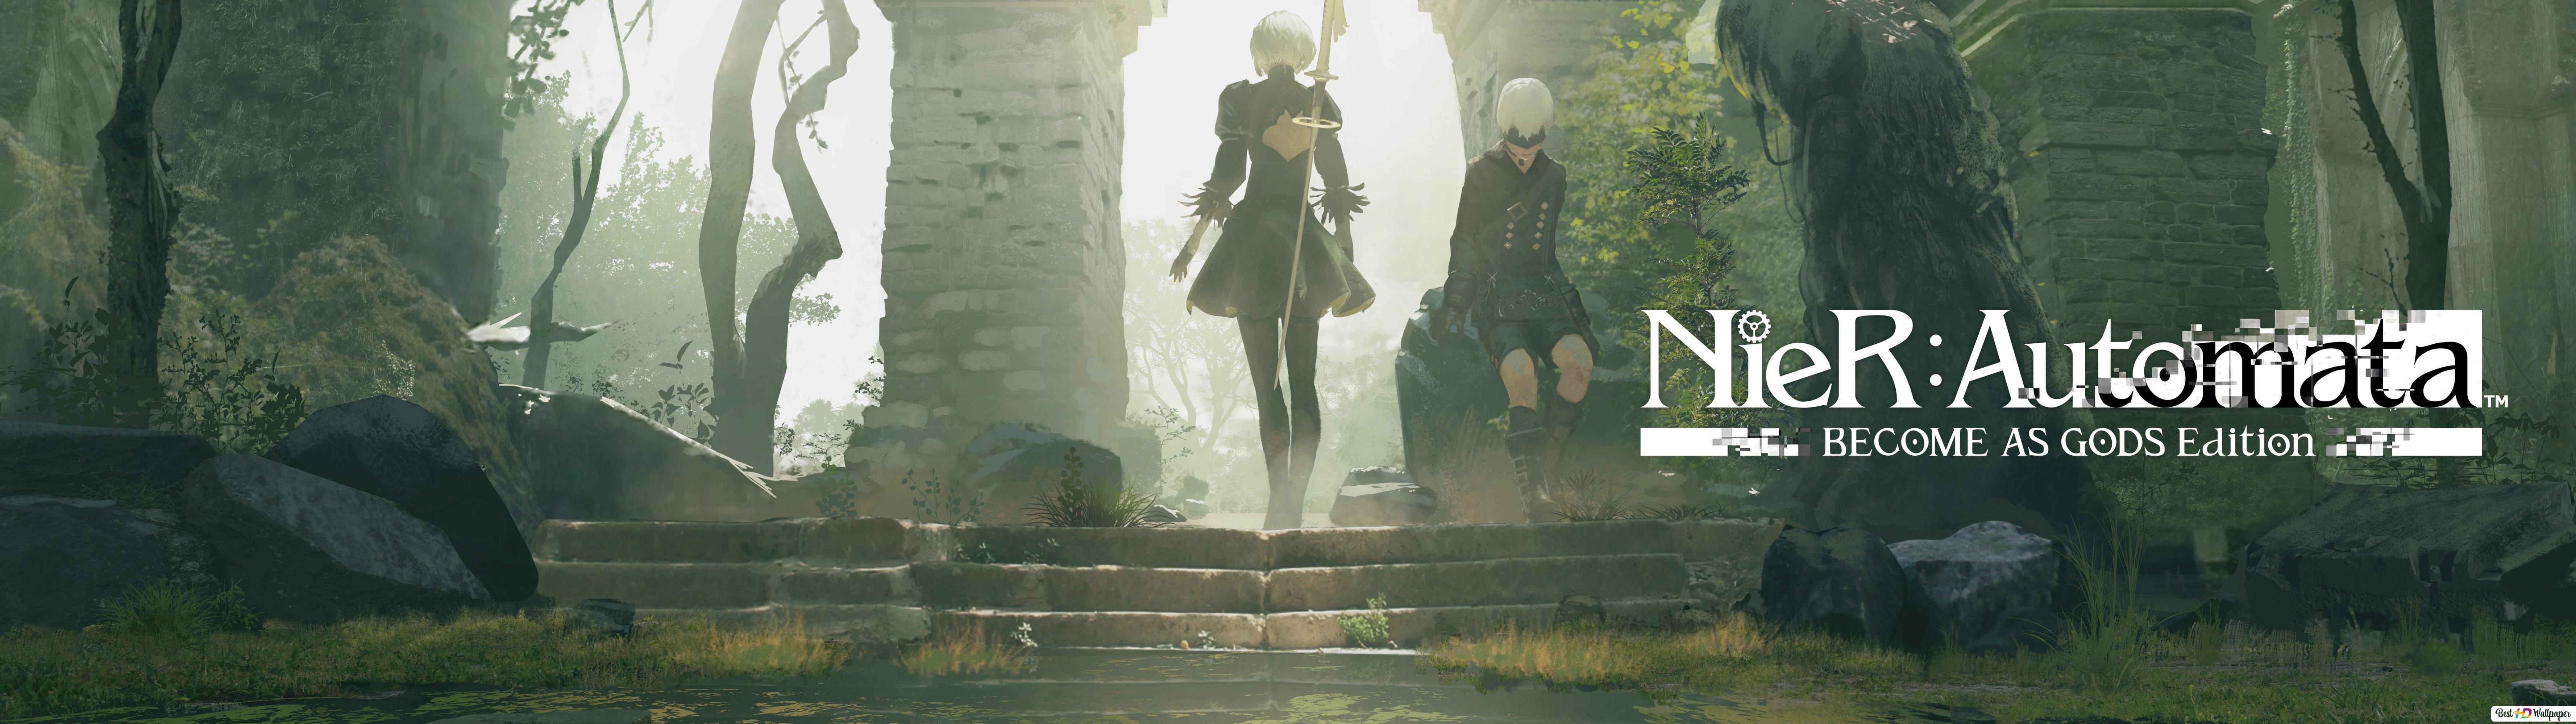 Nier Automata Become As Gods Edition Hd Wallpaper Download